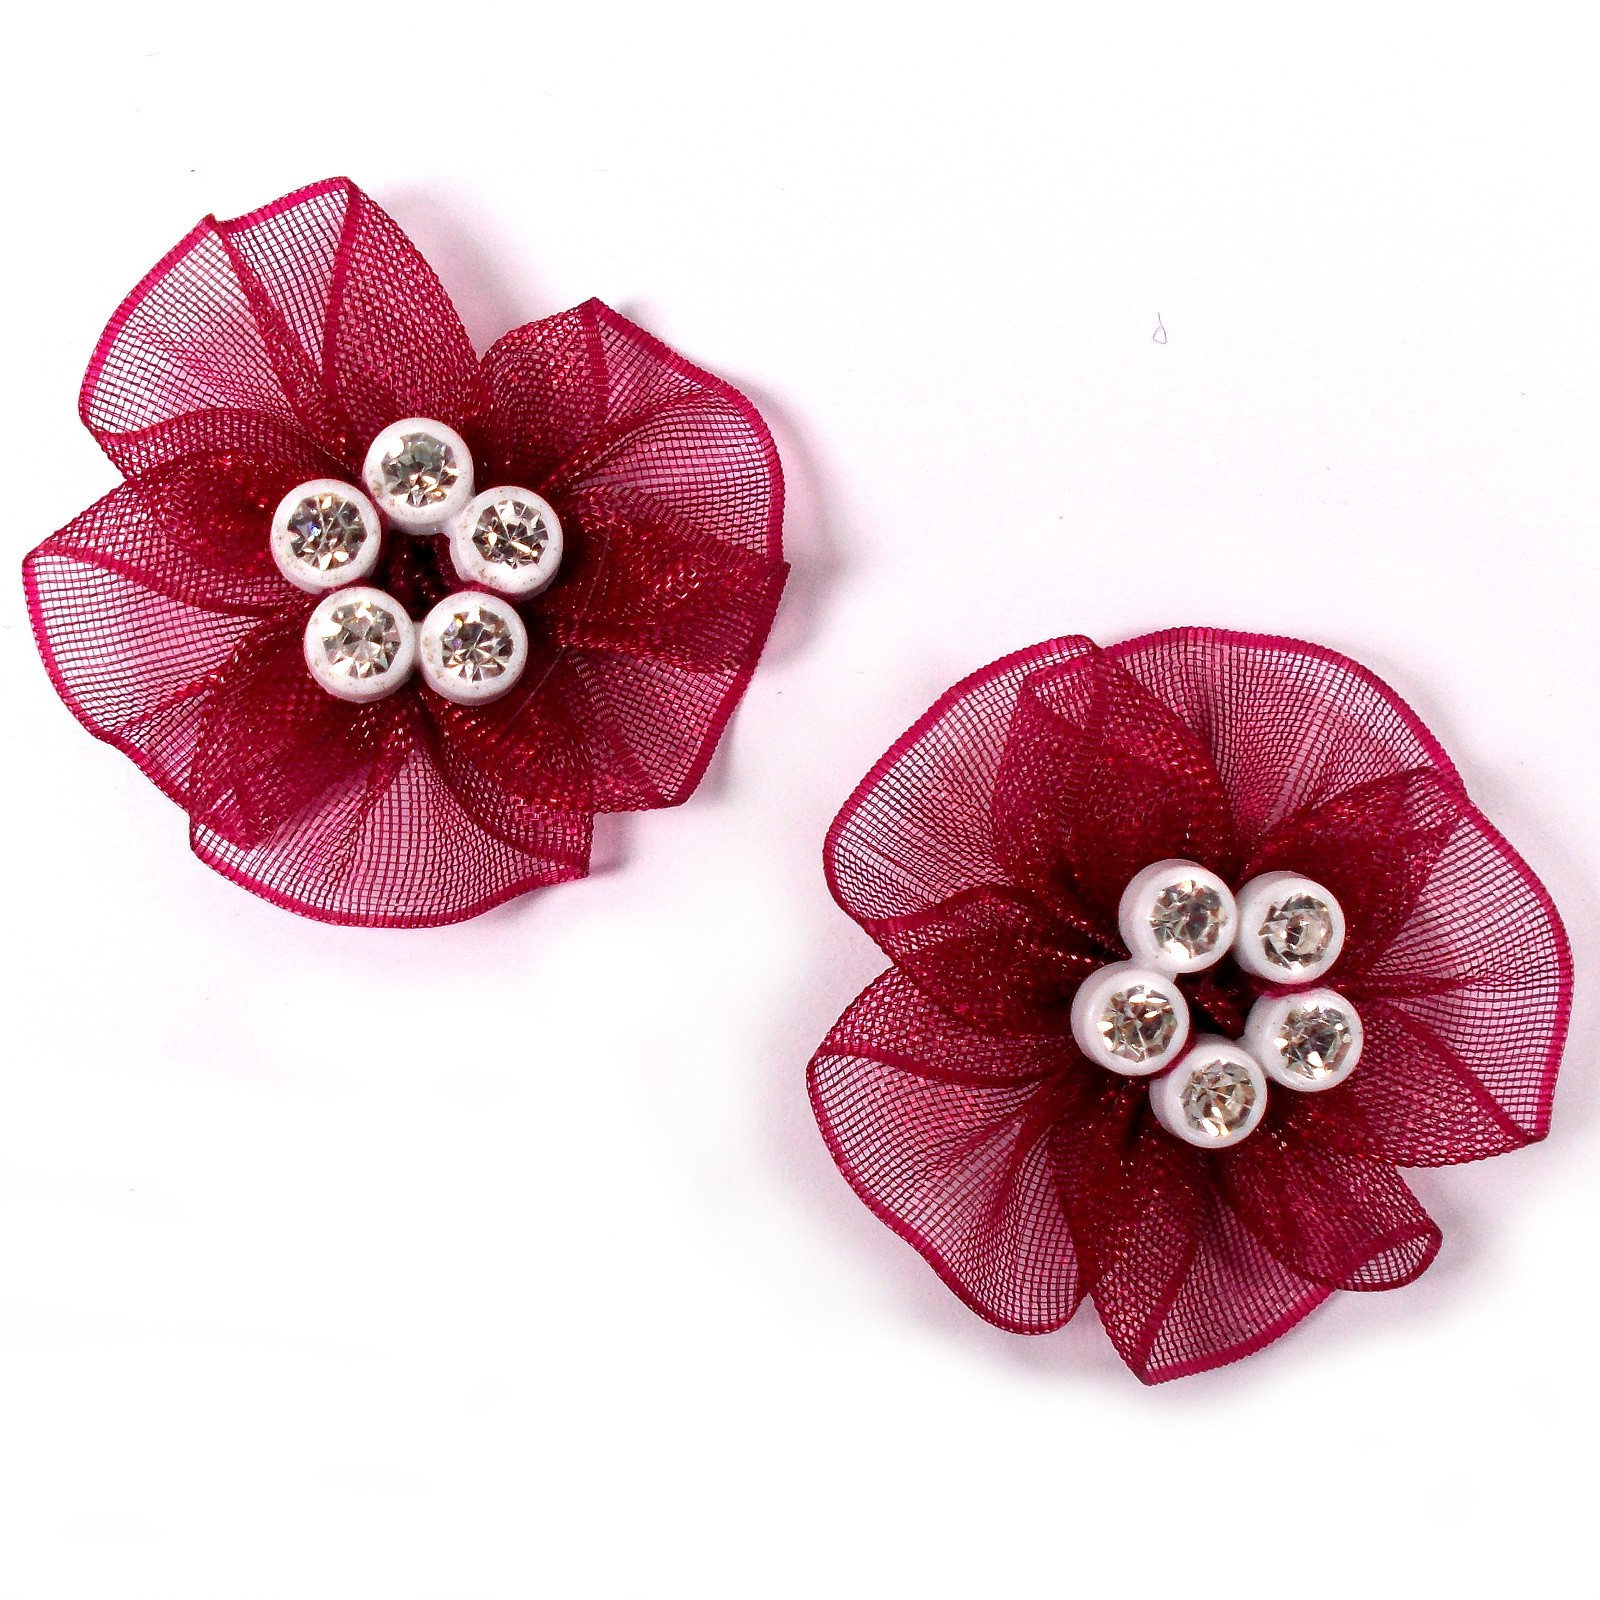 Sheer Ribbon Flowers with Diamante Circle Detail 3cm wide Burgundy Pack of 2